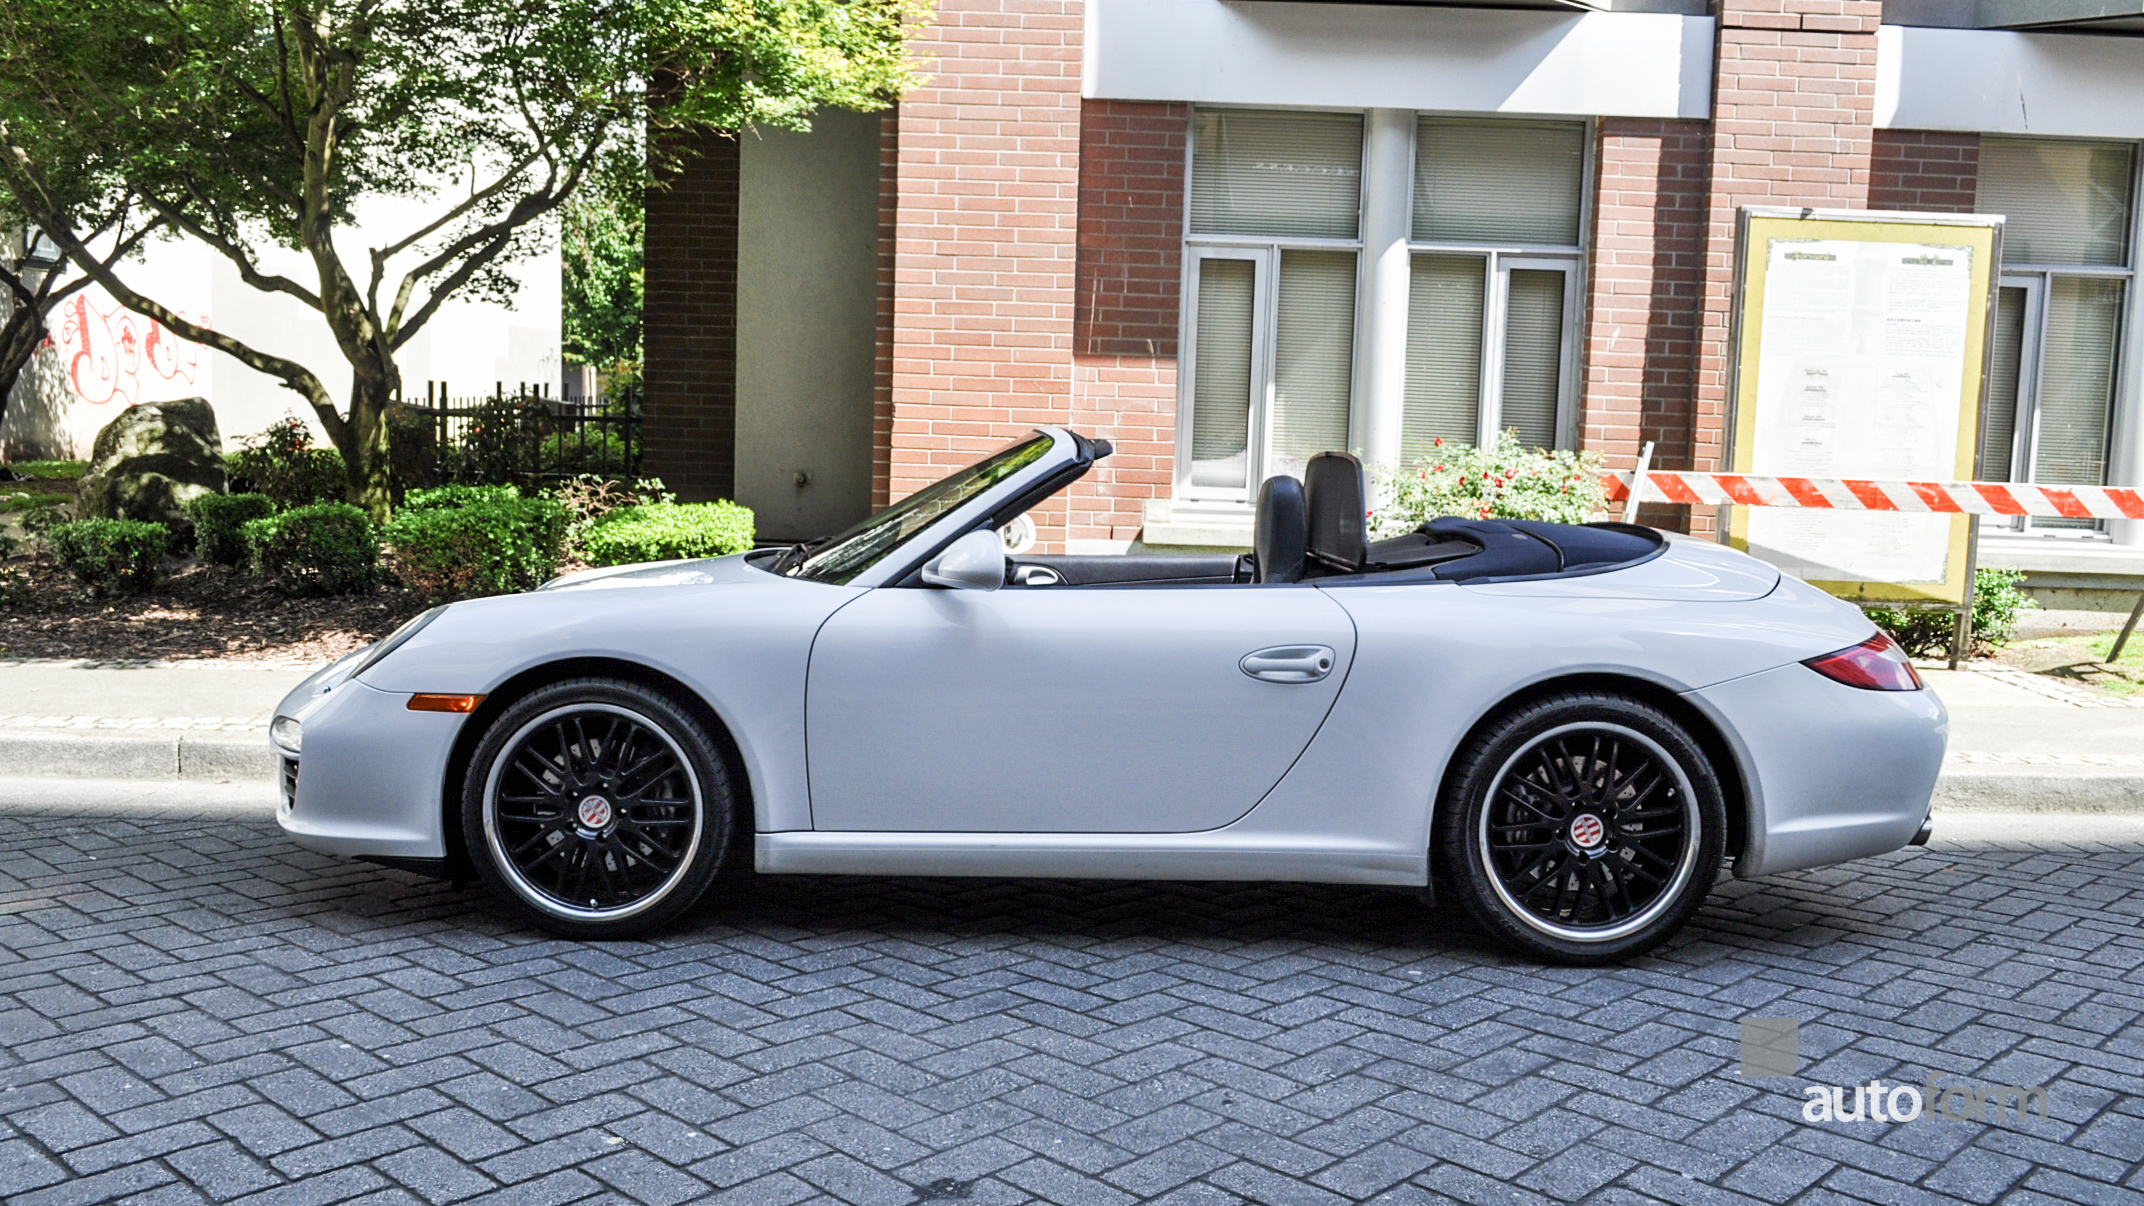 2009 porsche 911 carrera cabriolet autoform. Black Bedroom Furniture Sets. Home Design Ideas